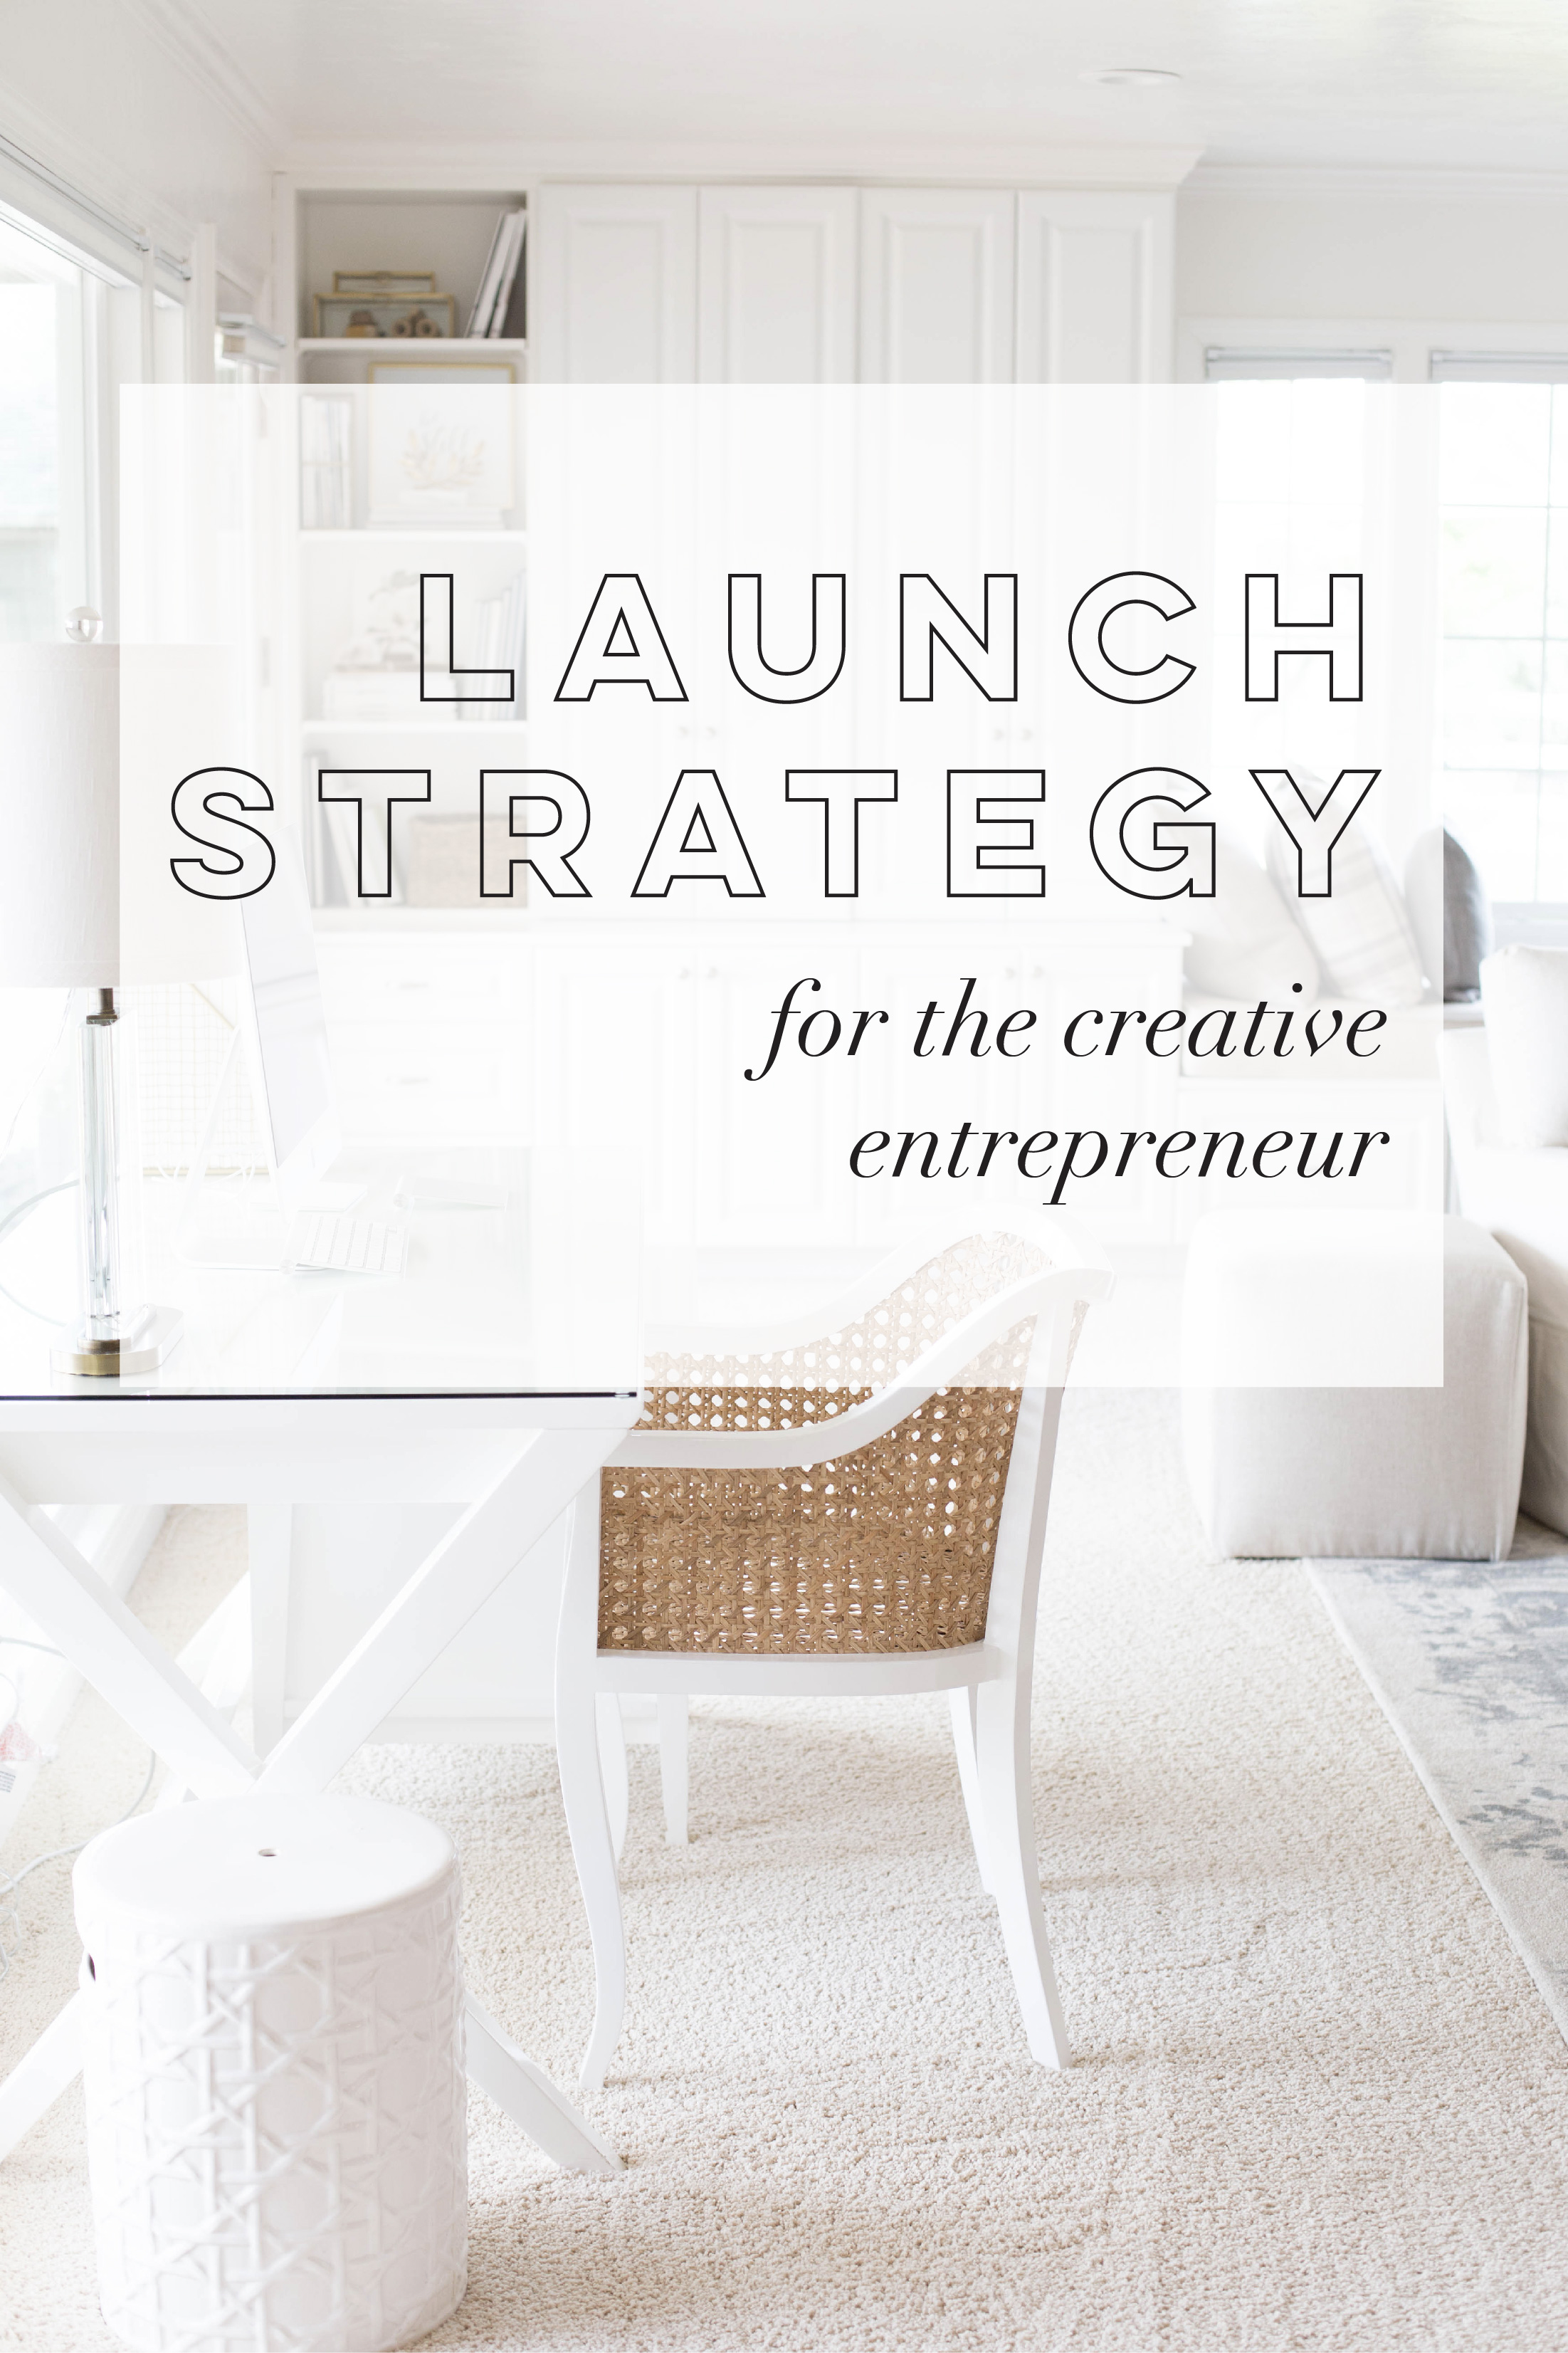 Launch Strategy for the Creative Entrepreneur - When it comes to running a business, there are several strategies that most Entrepreneurs recognize as important. Launching a product does not always make that list. Rachel, however, would argue that it is one of the most important steps. If you look at the businesses that are successful, they have a distinct Launch strategy. So, she's compiled all the best launch strategies and tips into an easy-to-digest and implement guide.This guide will assist you in perfecting the launch for your business and product/service. And the best news? The strategies will increase your bottom line. So, more dolla billz in those pockets of yours. Sound good?